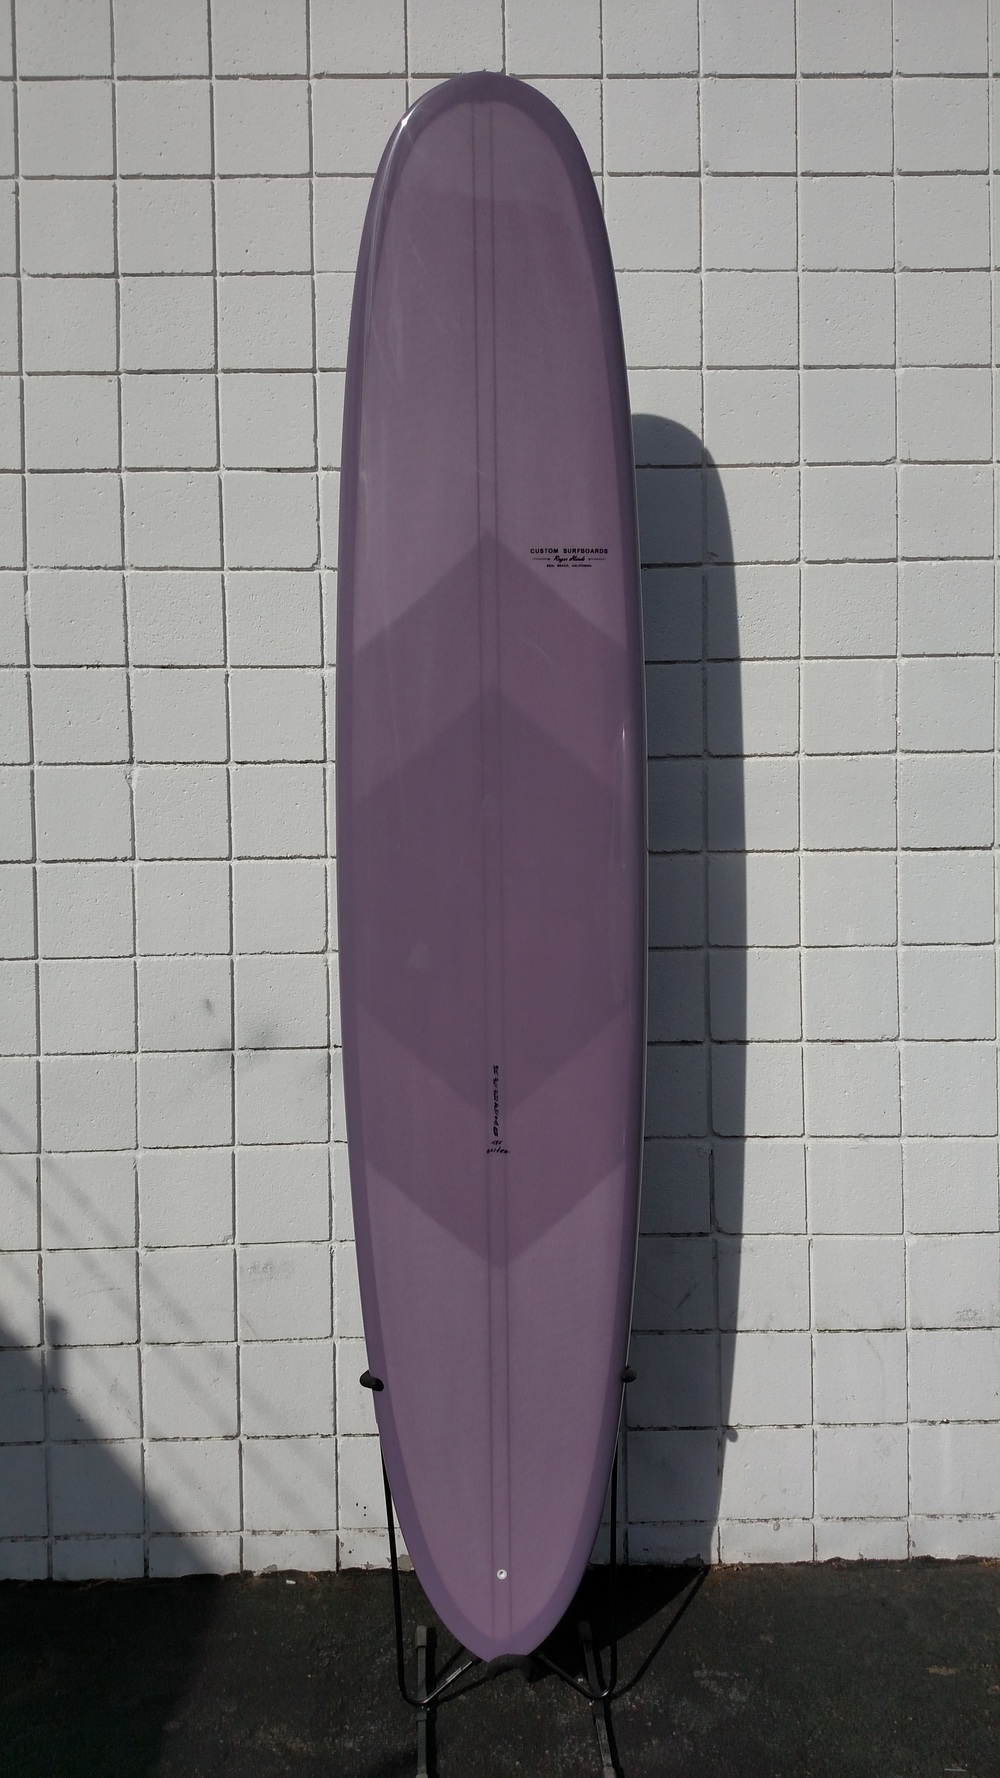 Roger-Hinds-Surfboards-Deck-Grape.jpg